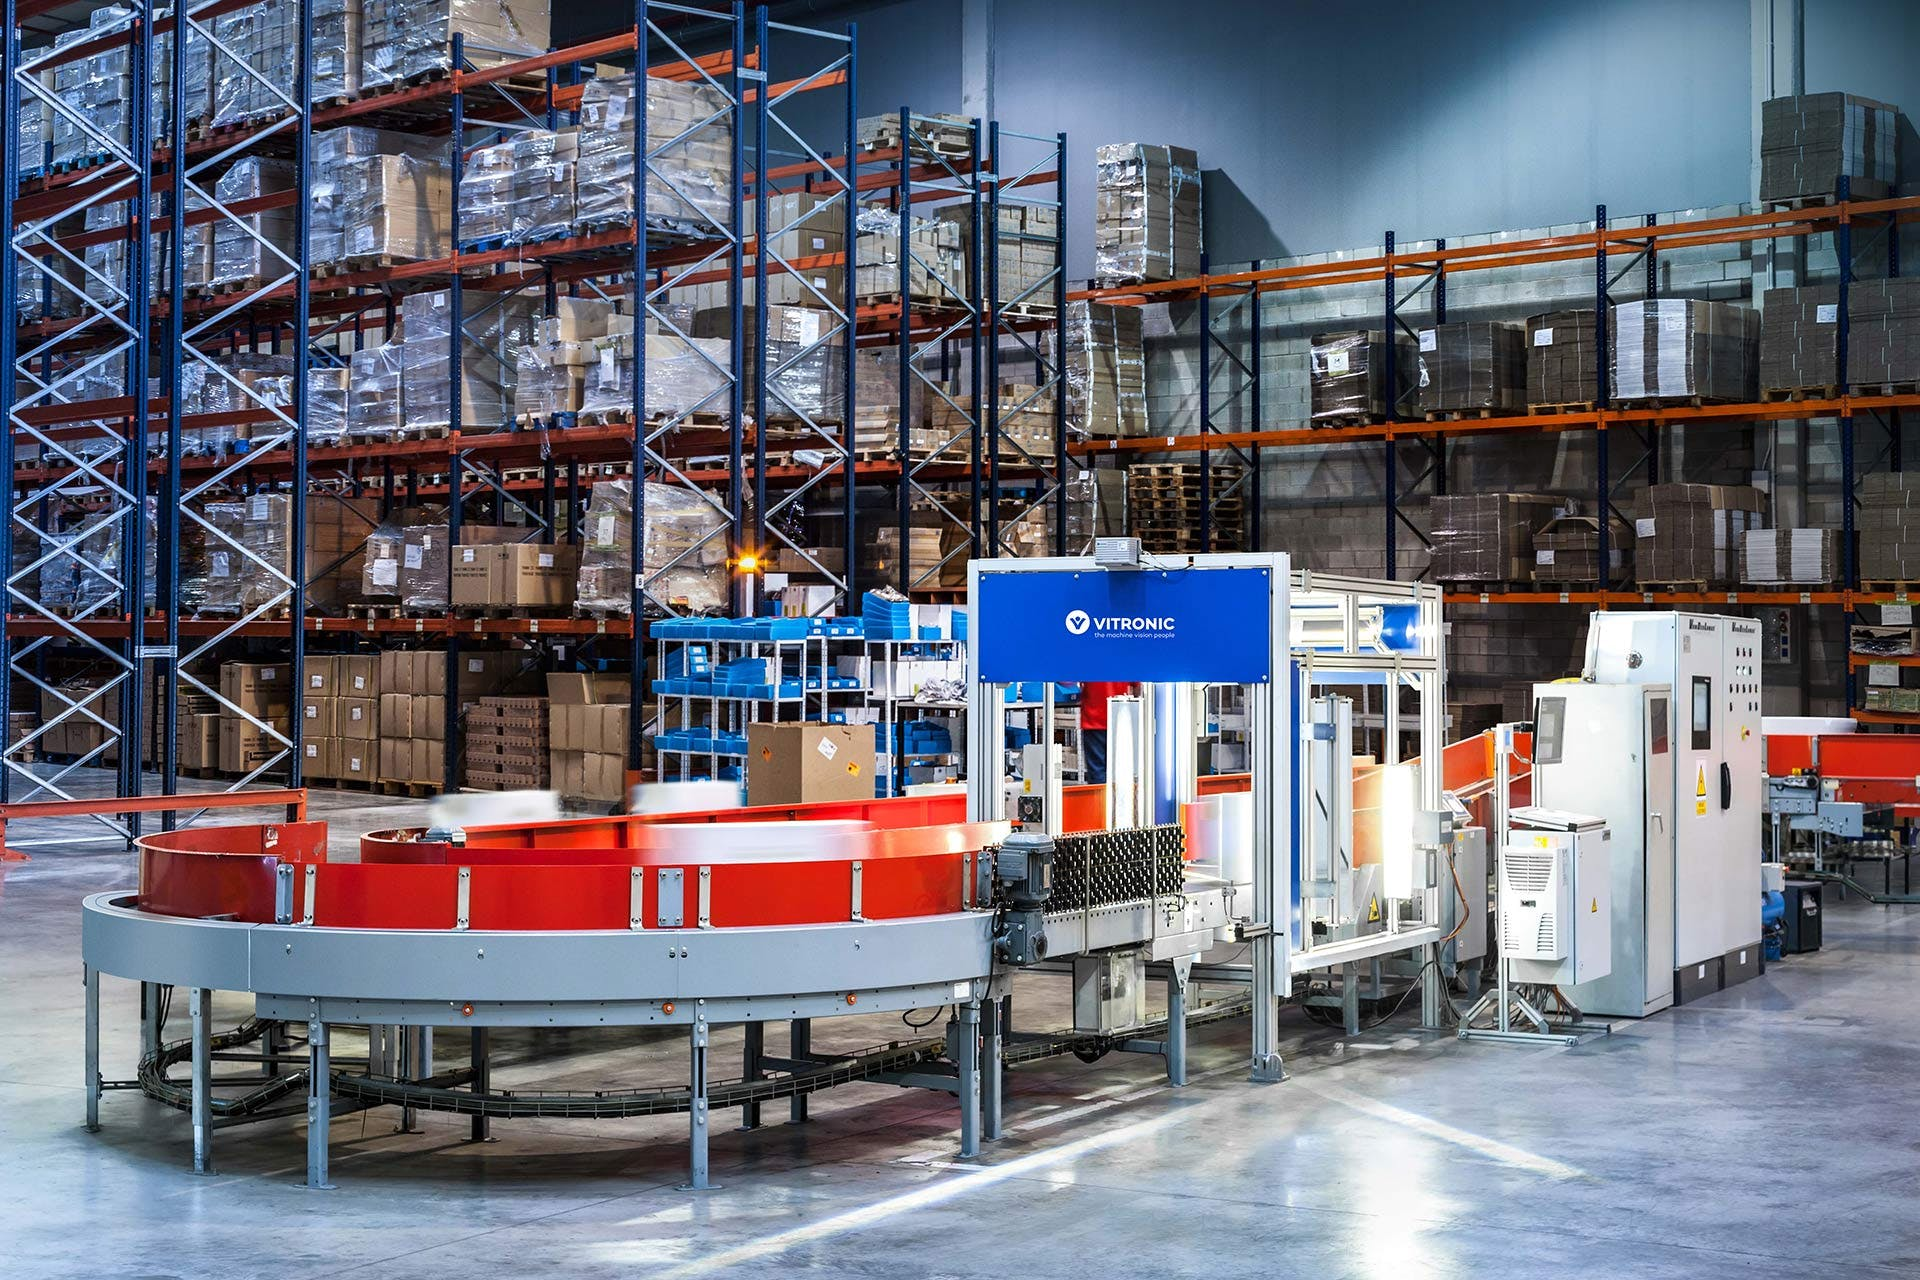 View into a warehouse with an Auto-ID system